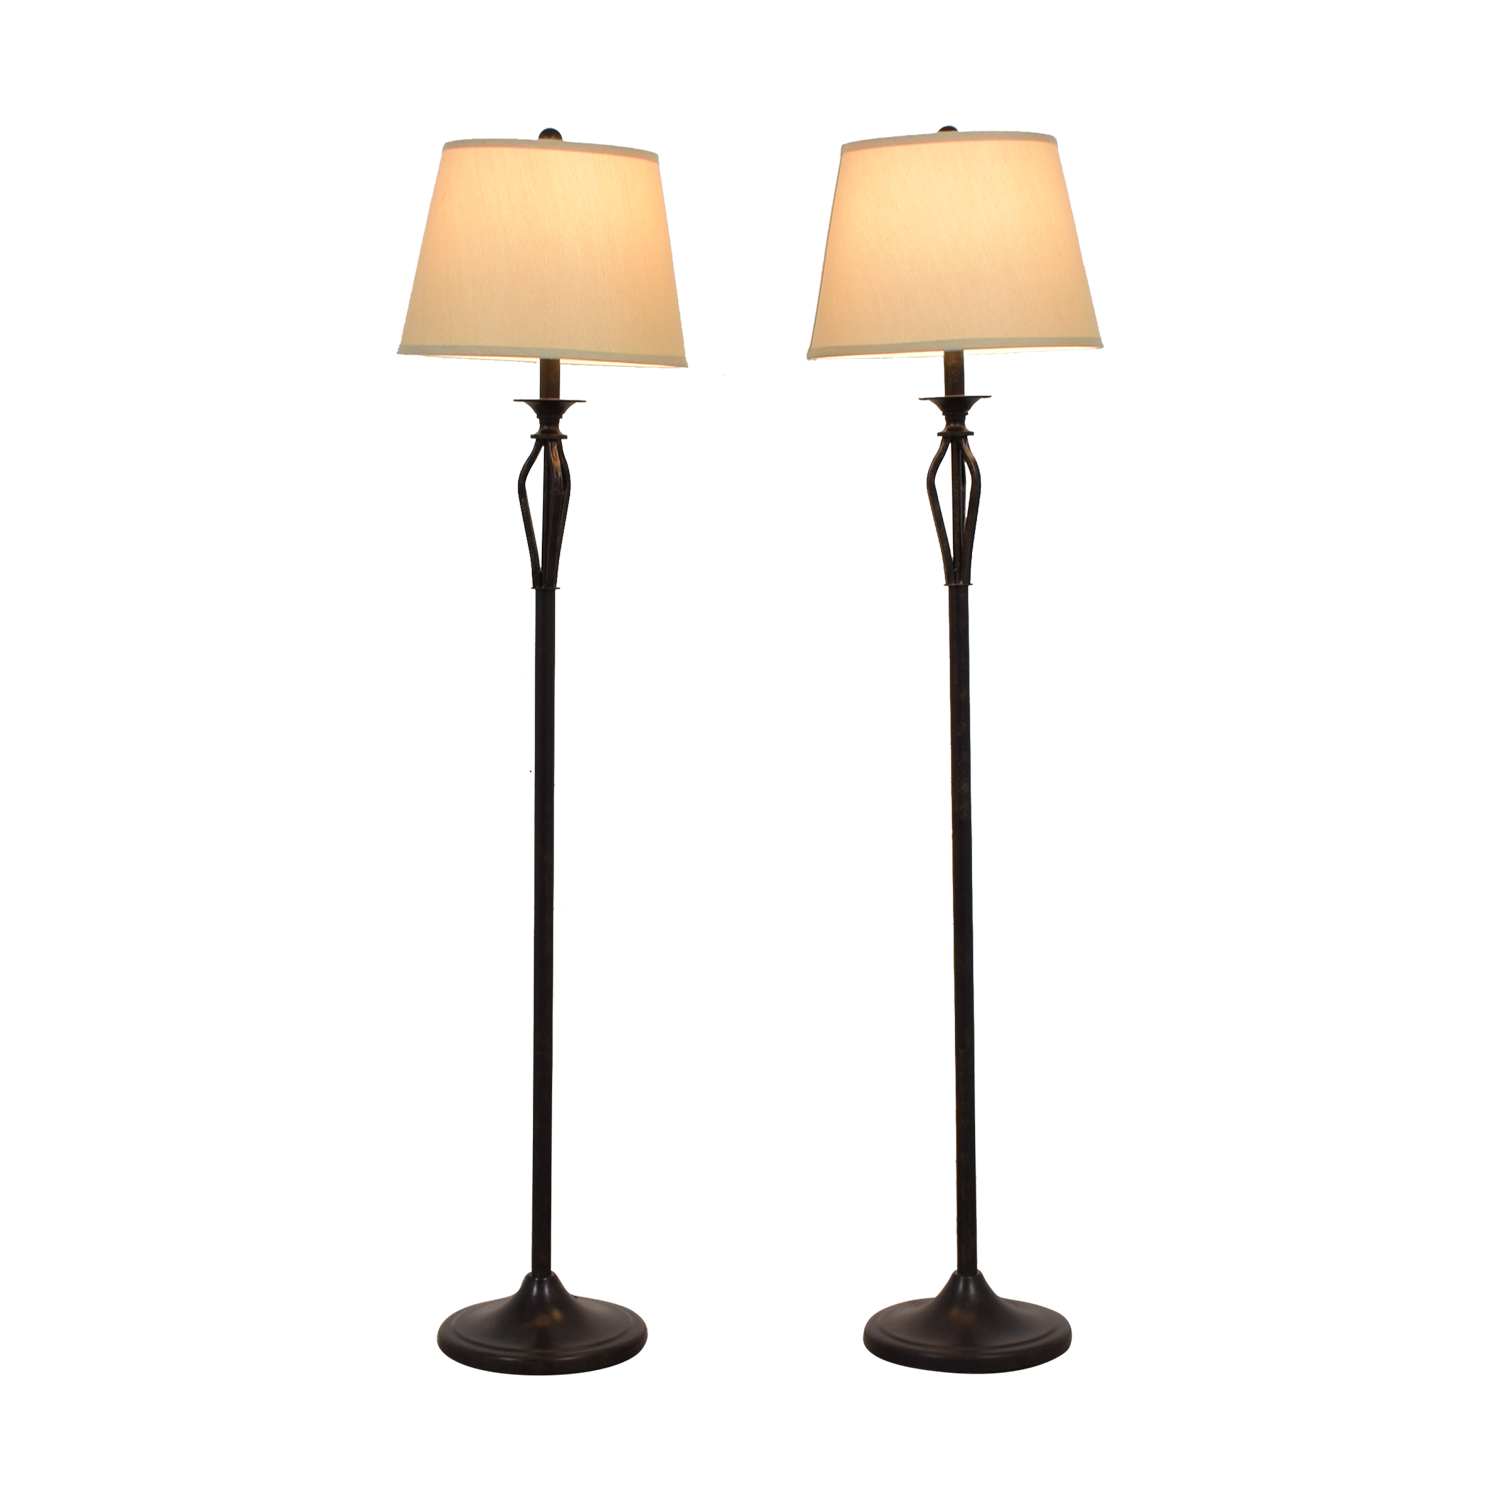 Brown Floor Lamps for sale